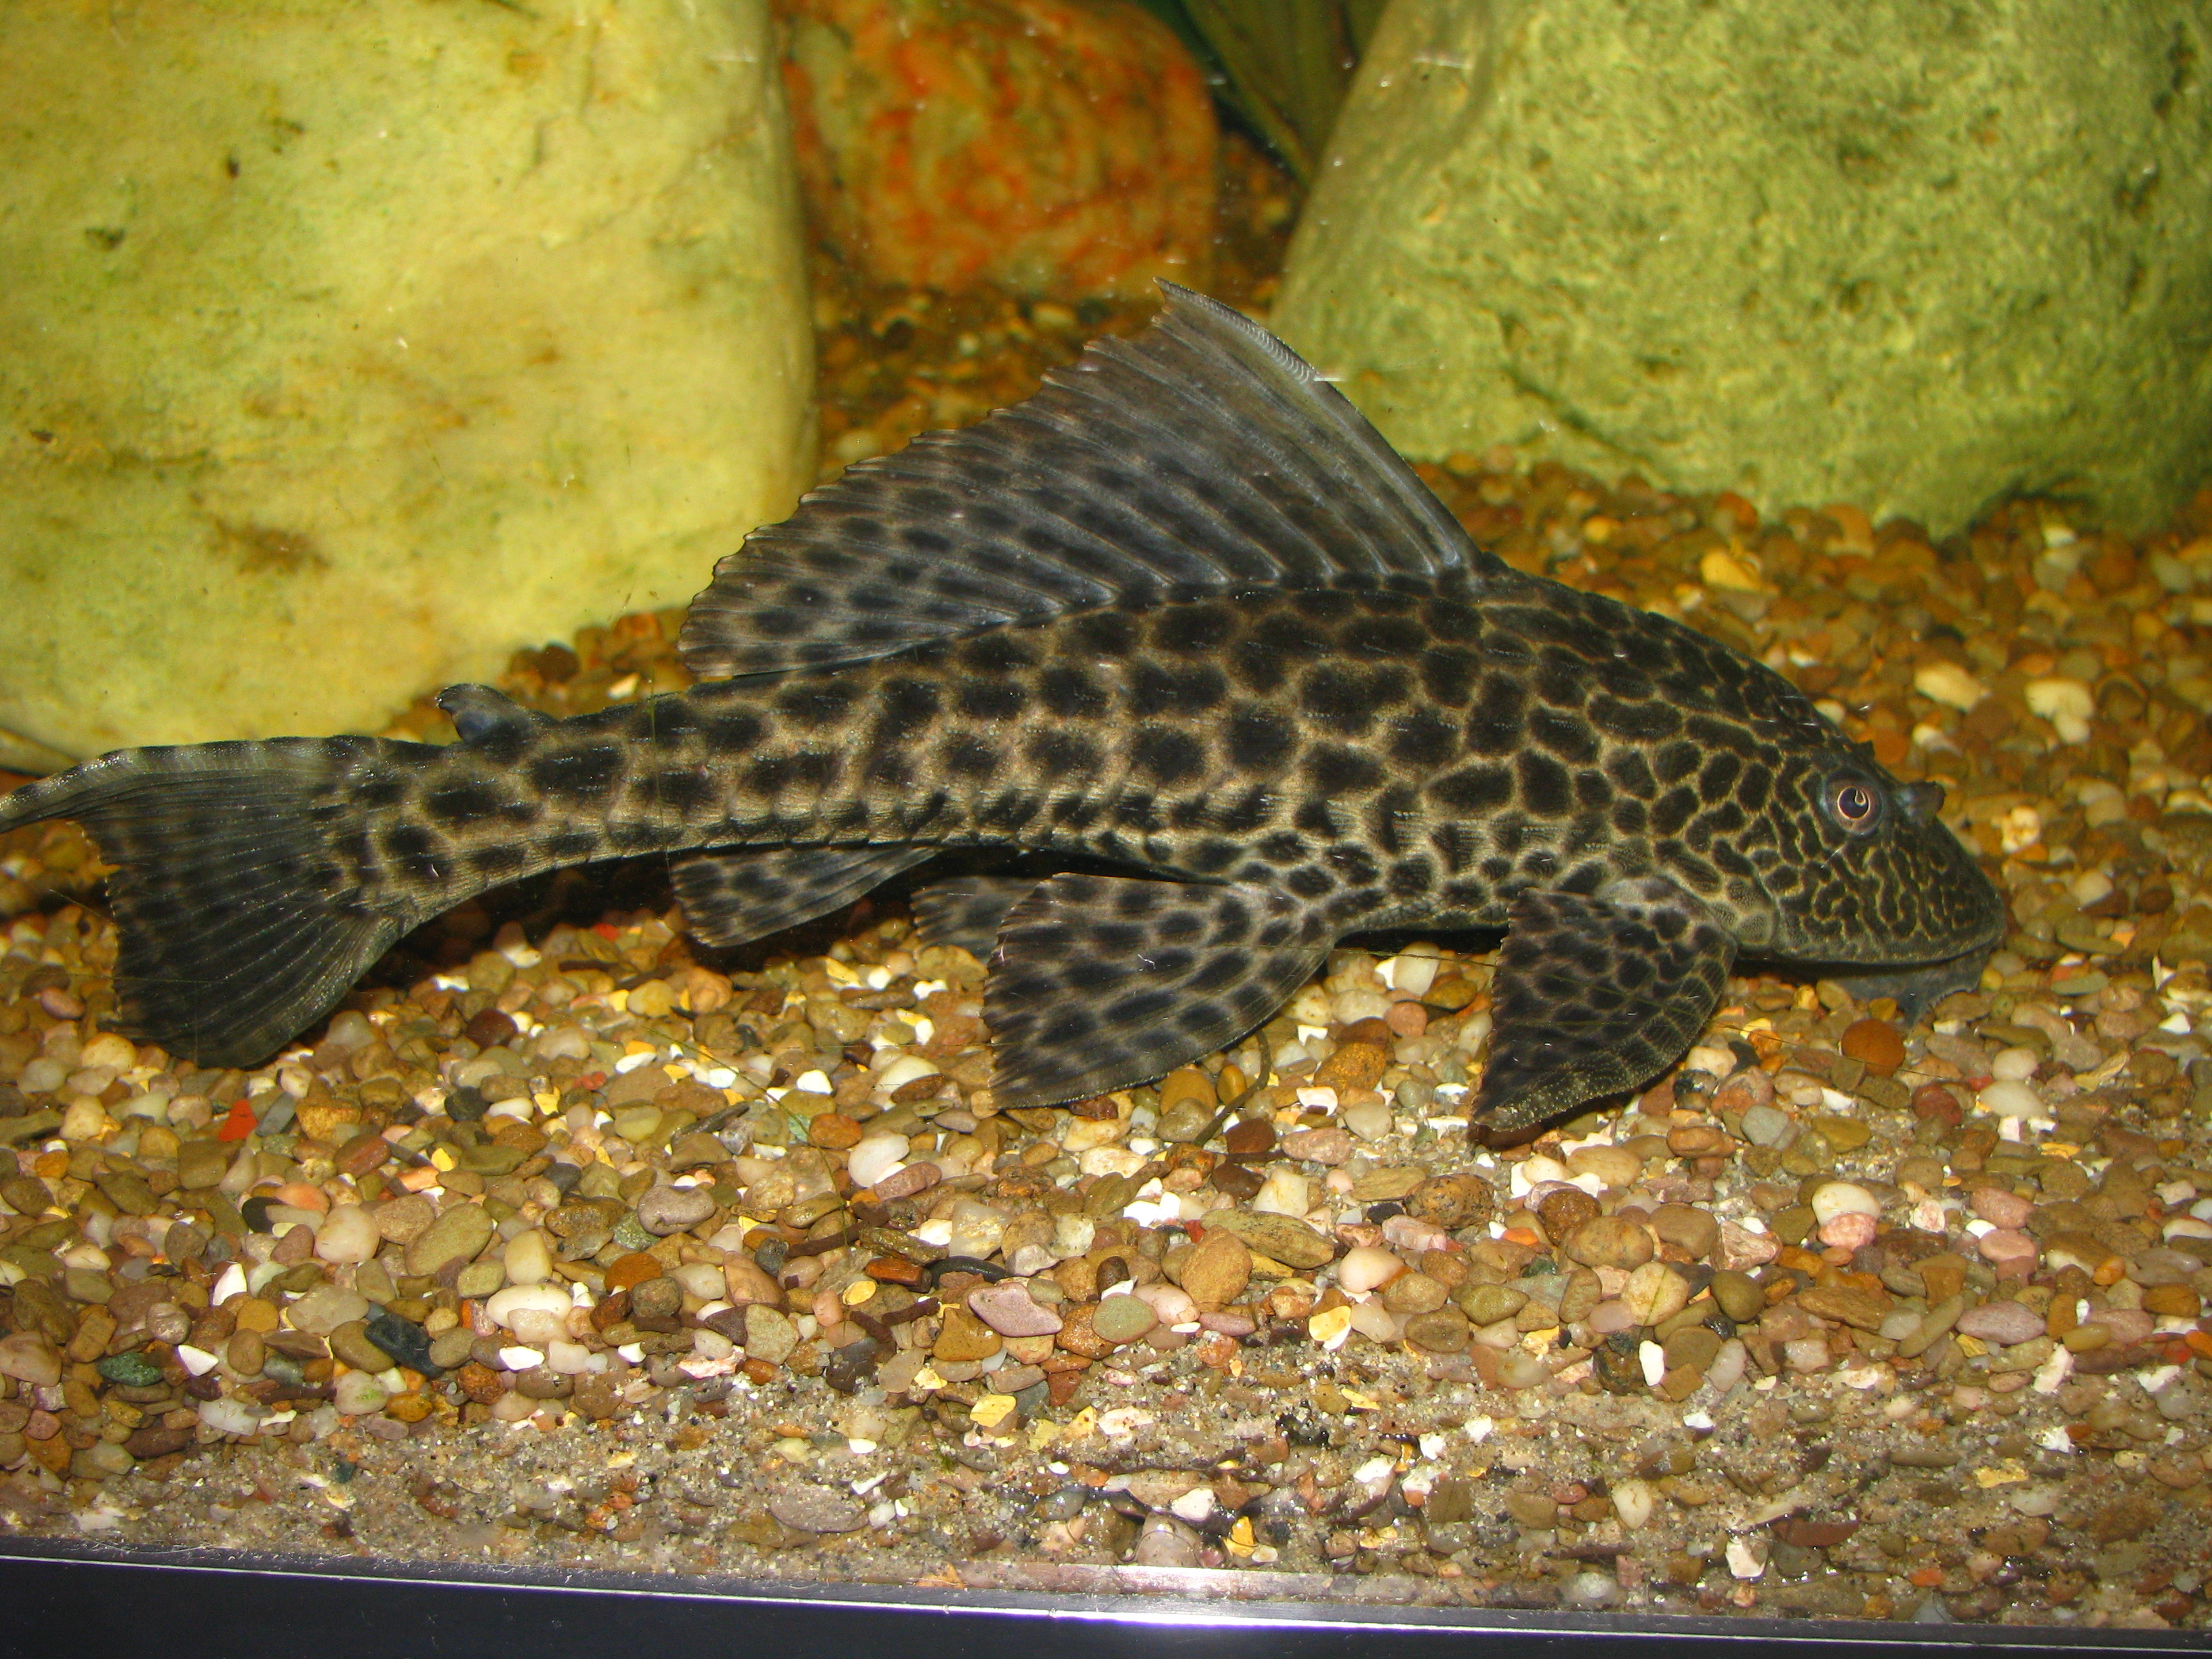 Pictures pleco fish for sale l 046 zebra pleco for Pleco fish for sale